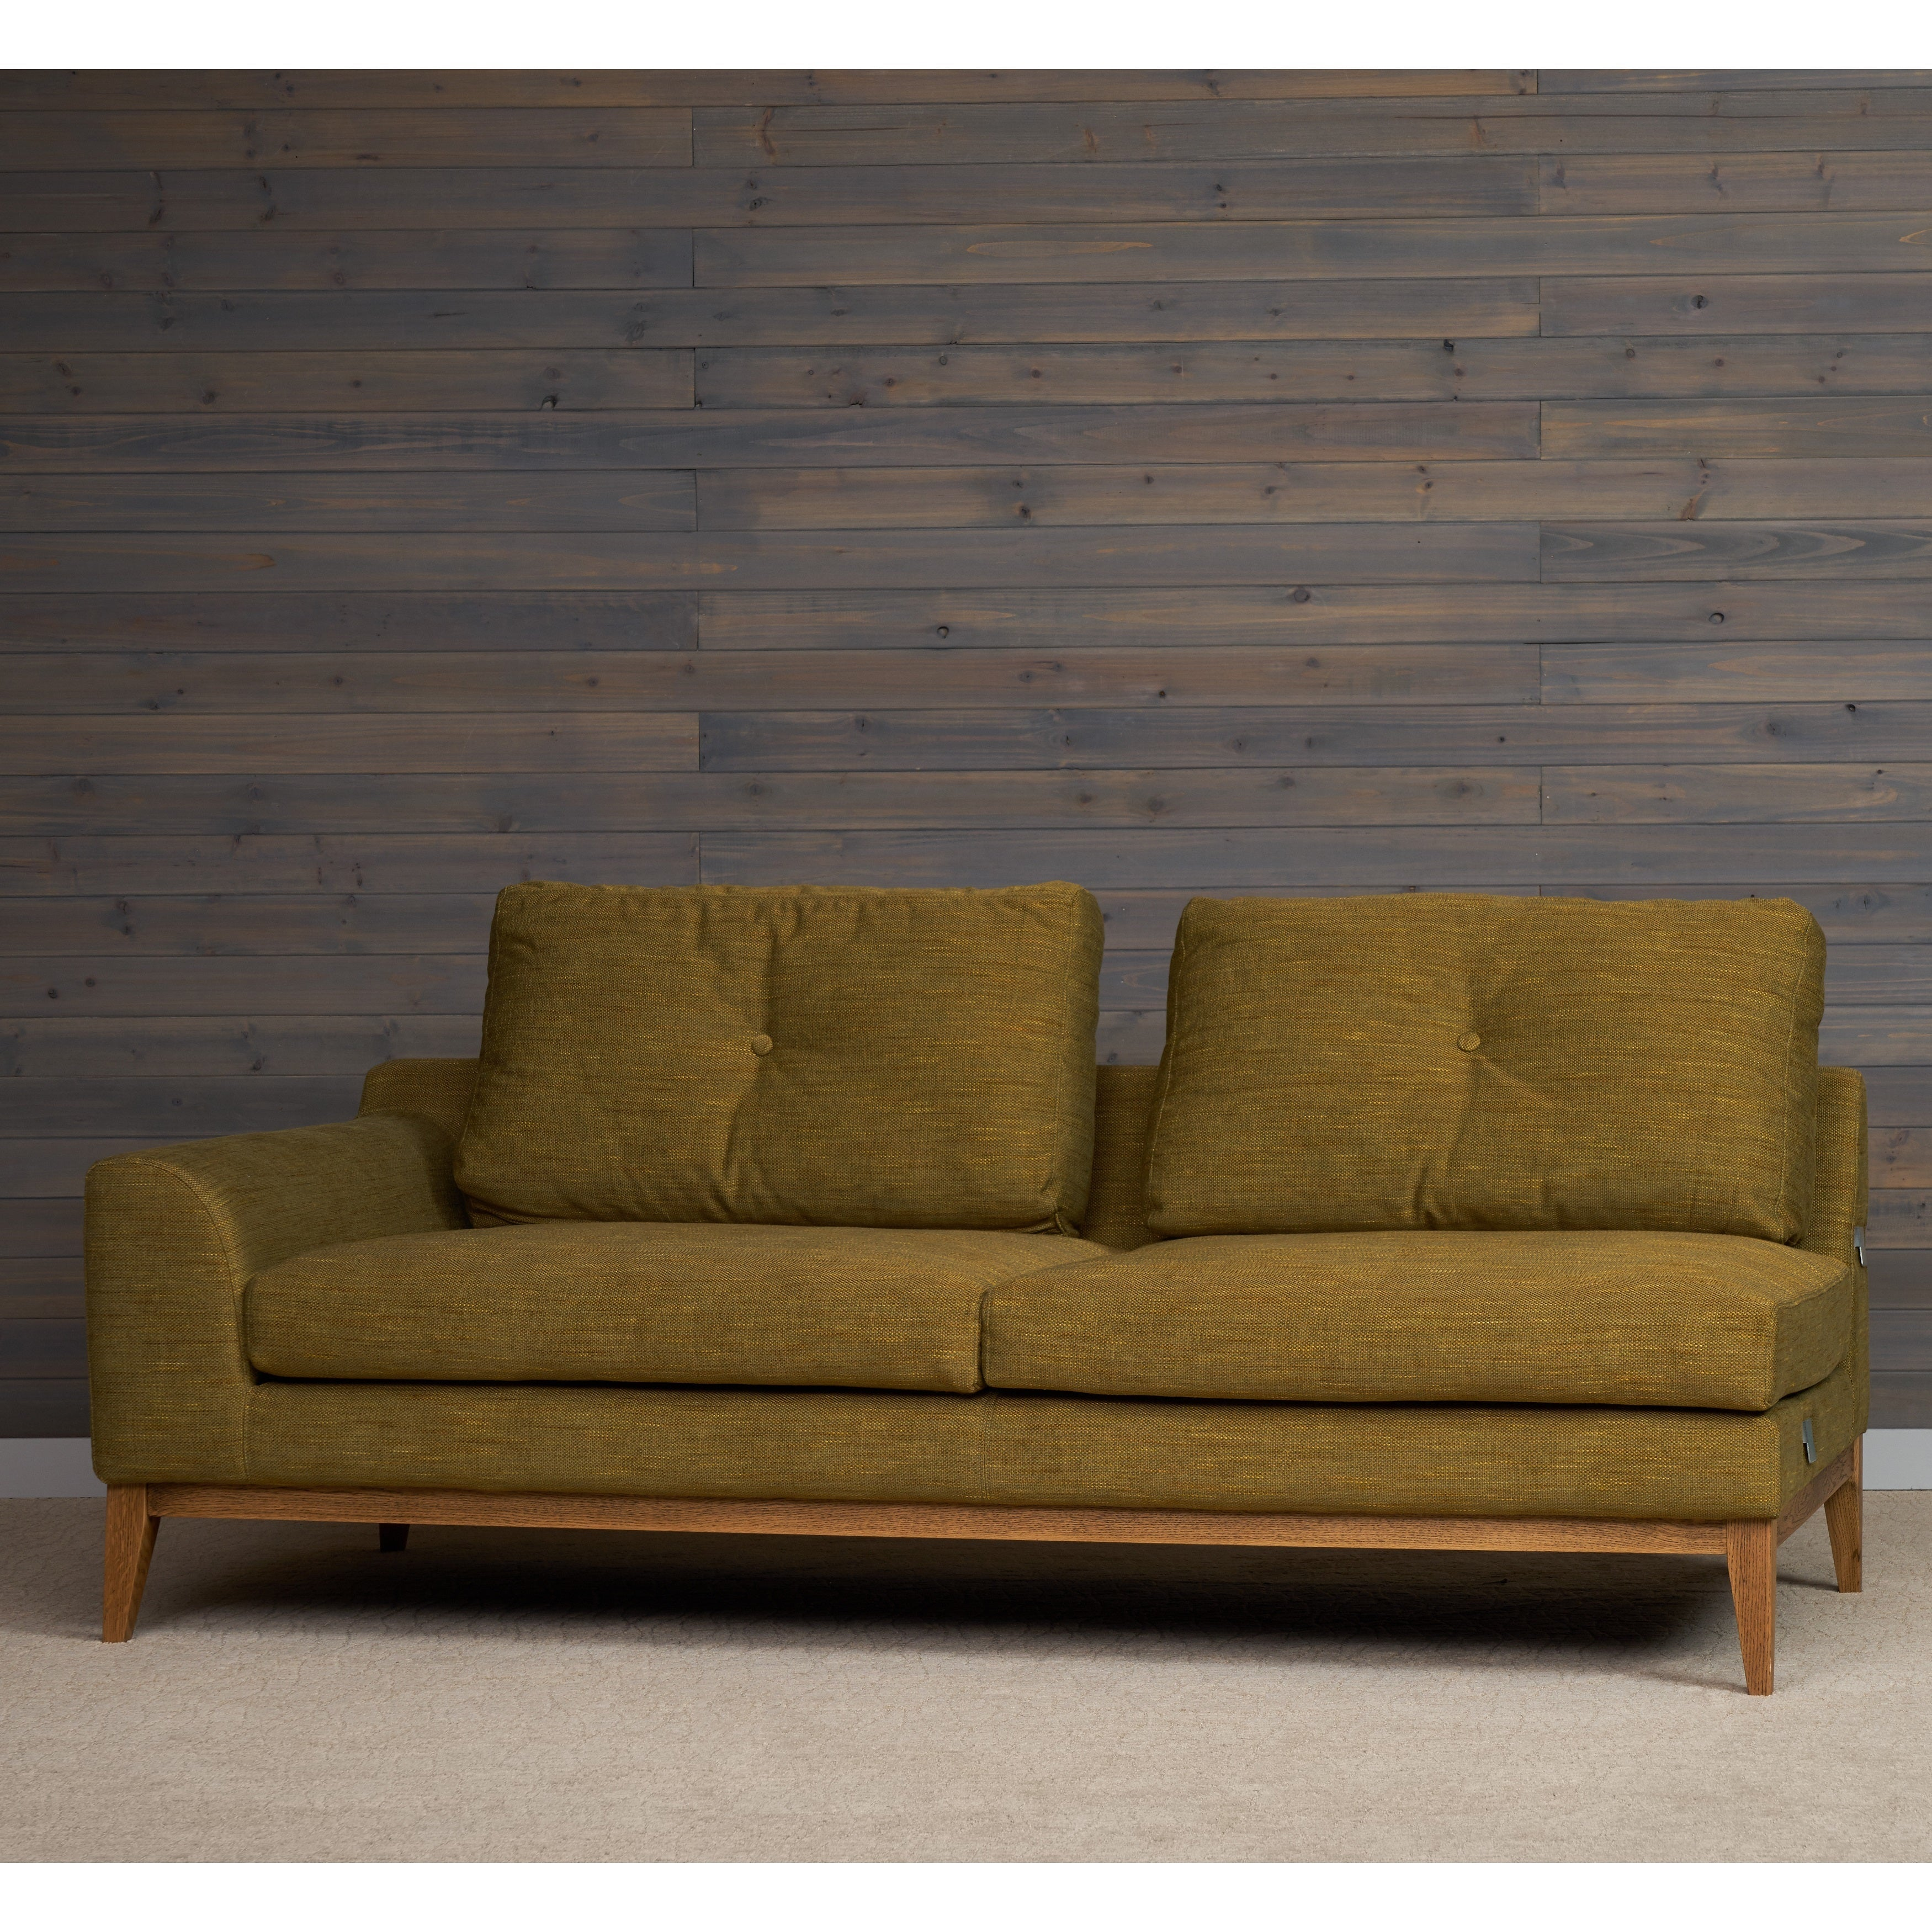 Picture of: Wagner Mid Century Modern Right Arm Sofa Sectional In Olive Green By Rst Brands Overstock 13620234